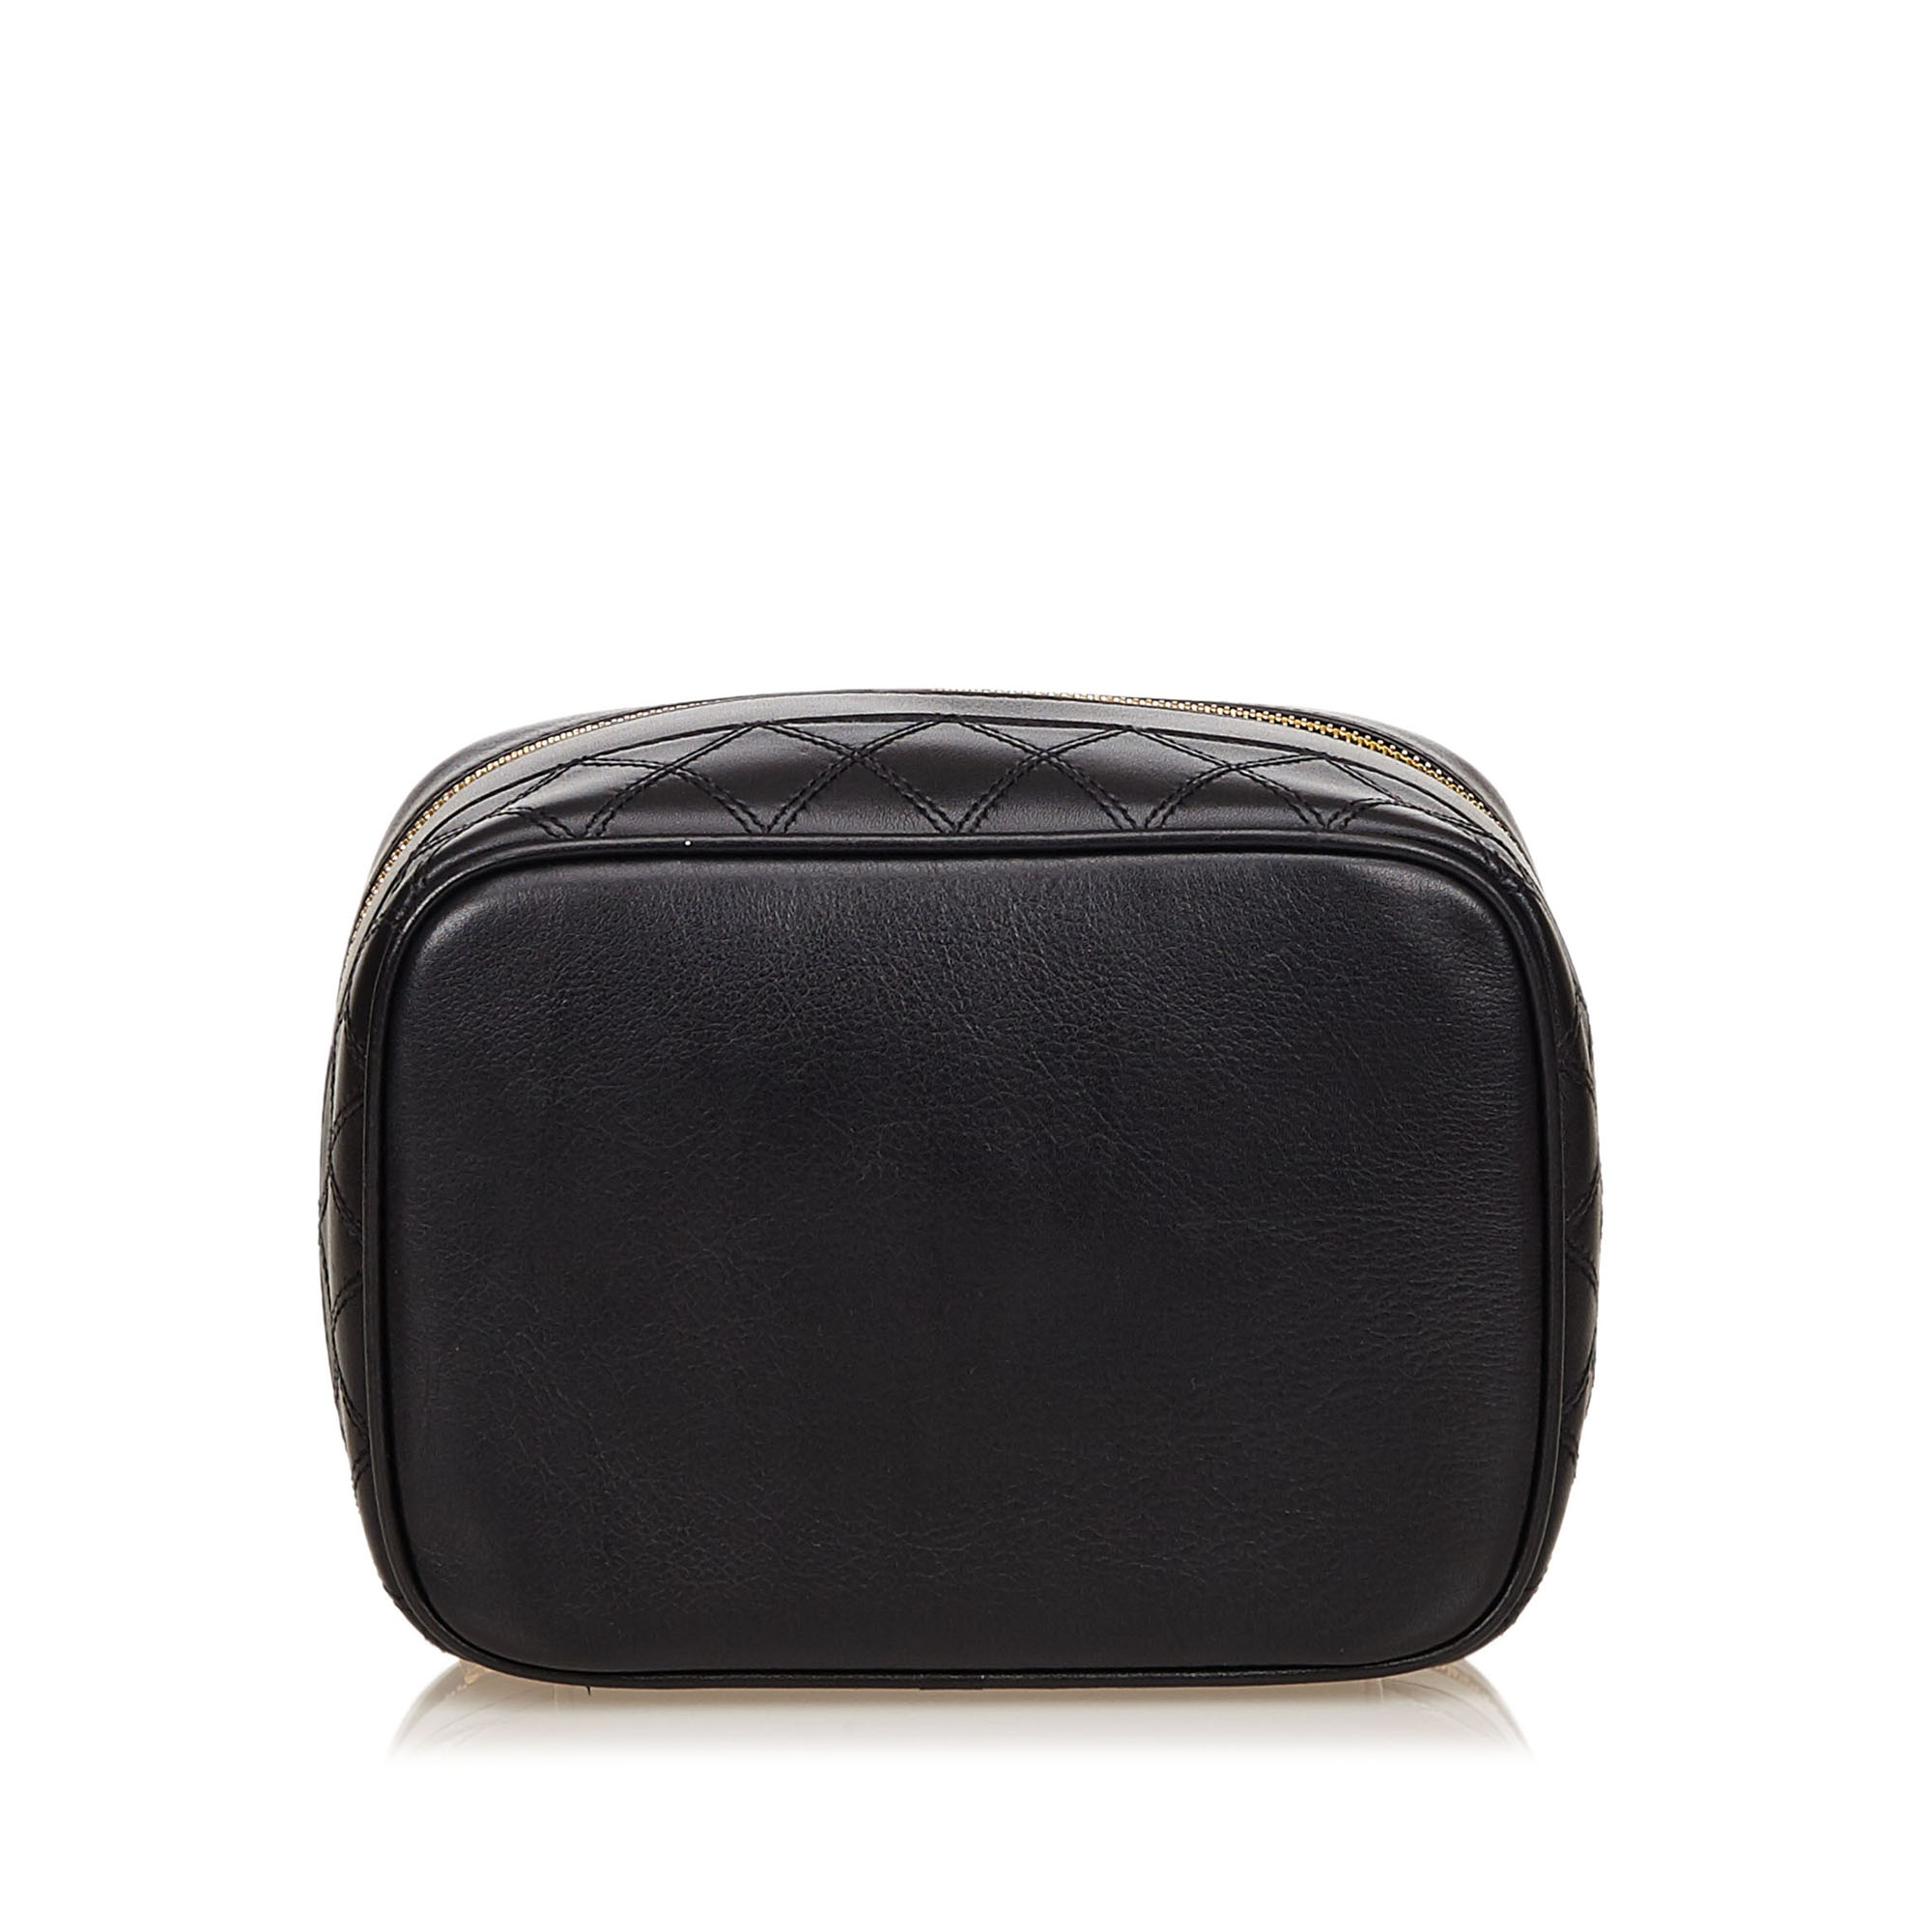 Chanel Black Quilted Lambskin Vanity Case